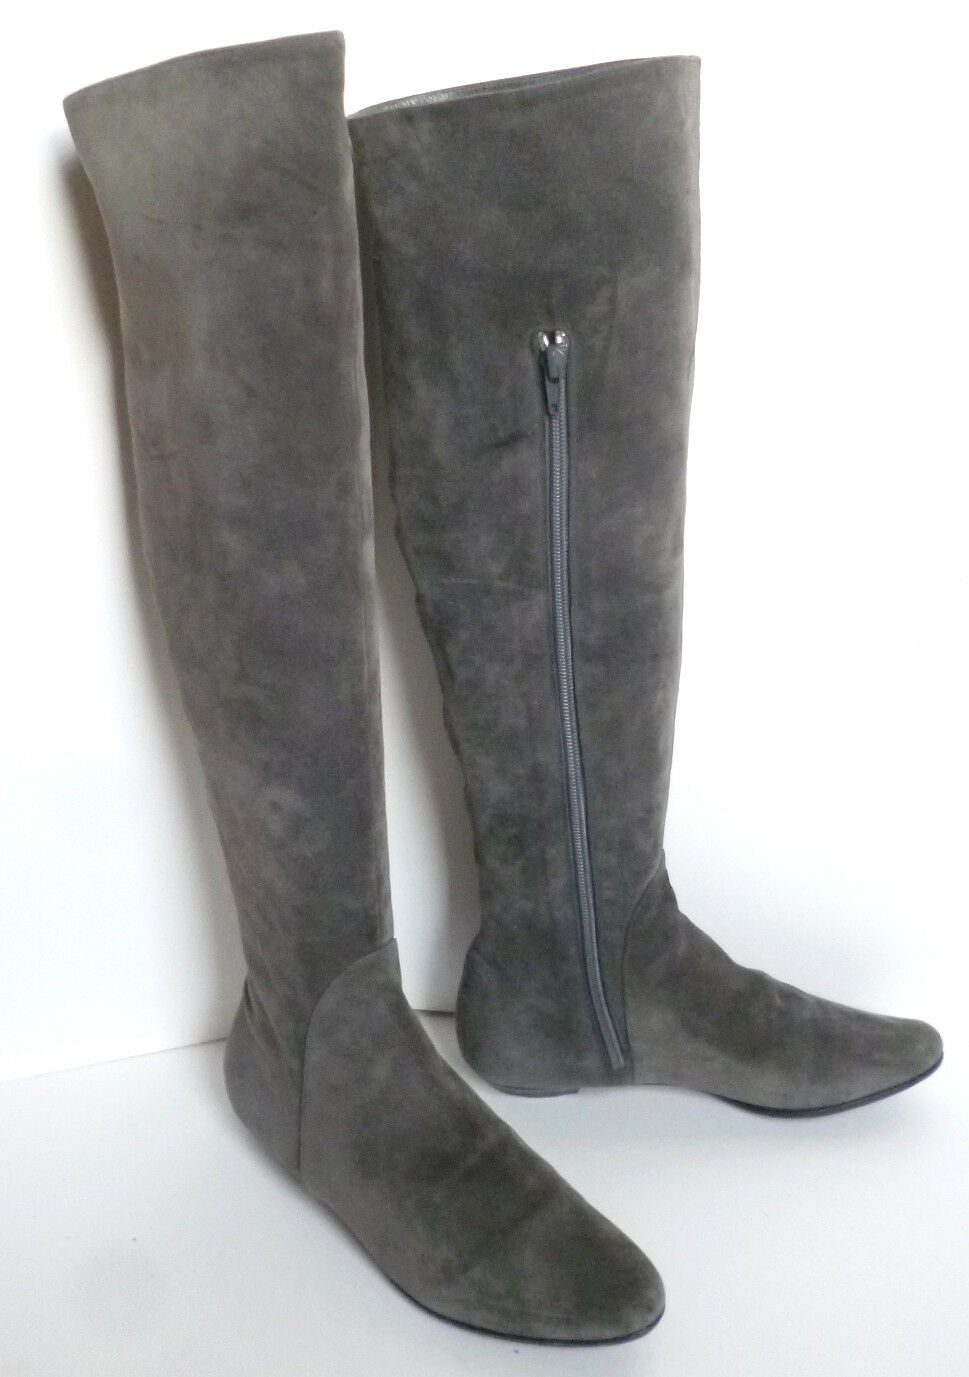 MICHEL PERRY ITALY Gray KNEE Suede Leder OVER THE KNEE Gray Stiefel-36 4ef8df